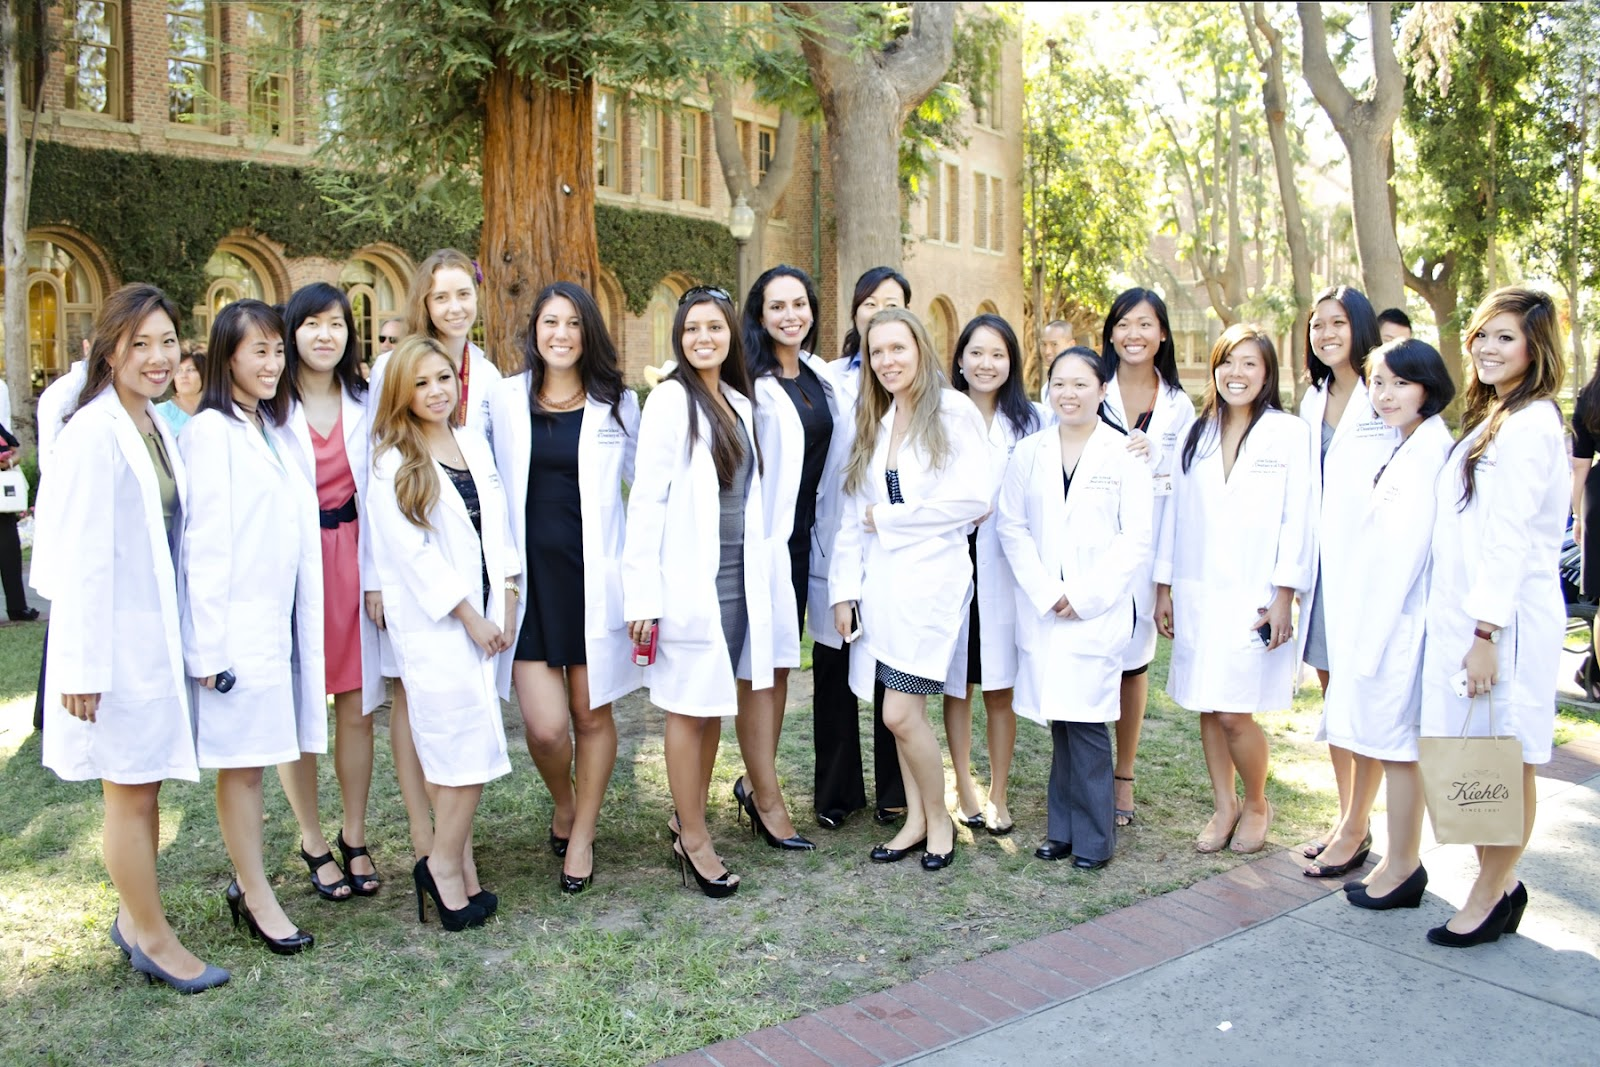 Day 01: Class of 2016 White Coat Ceremony | Mirror and Explorer